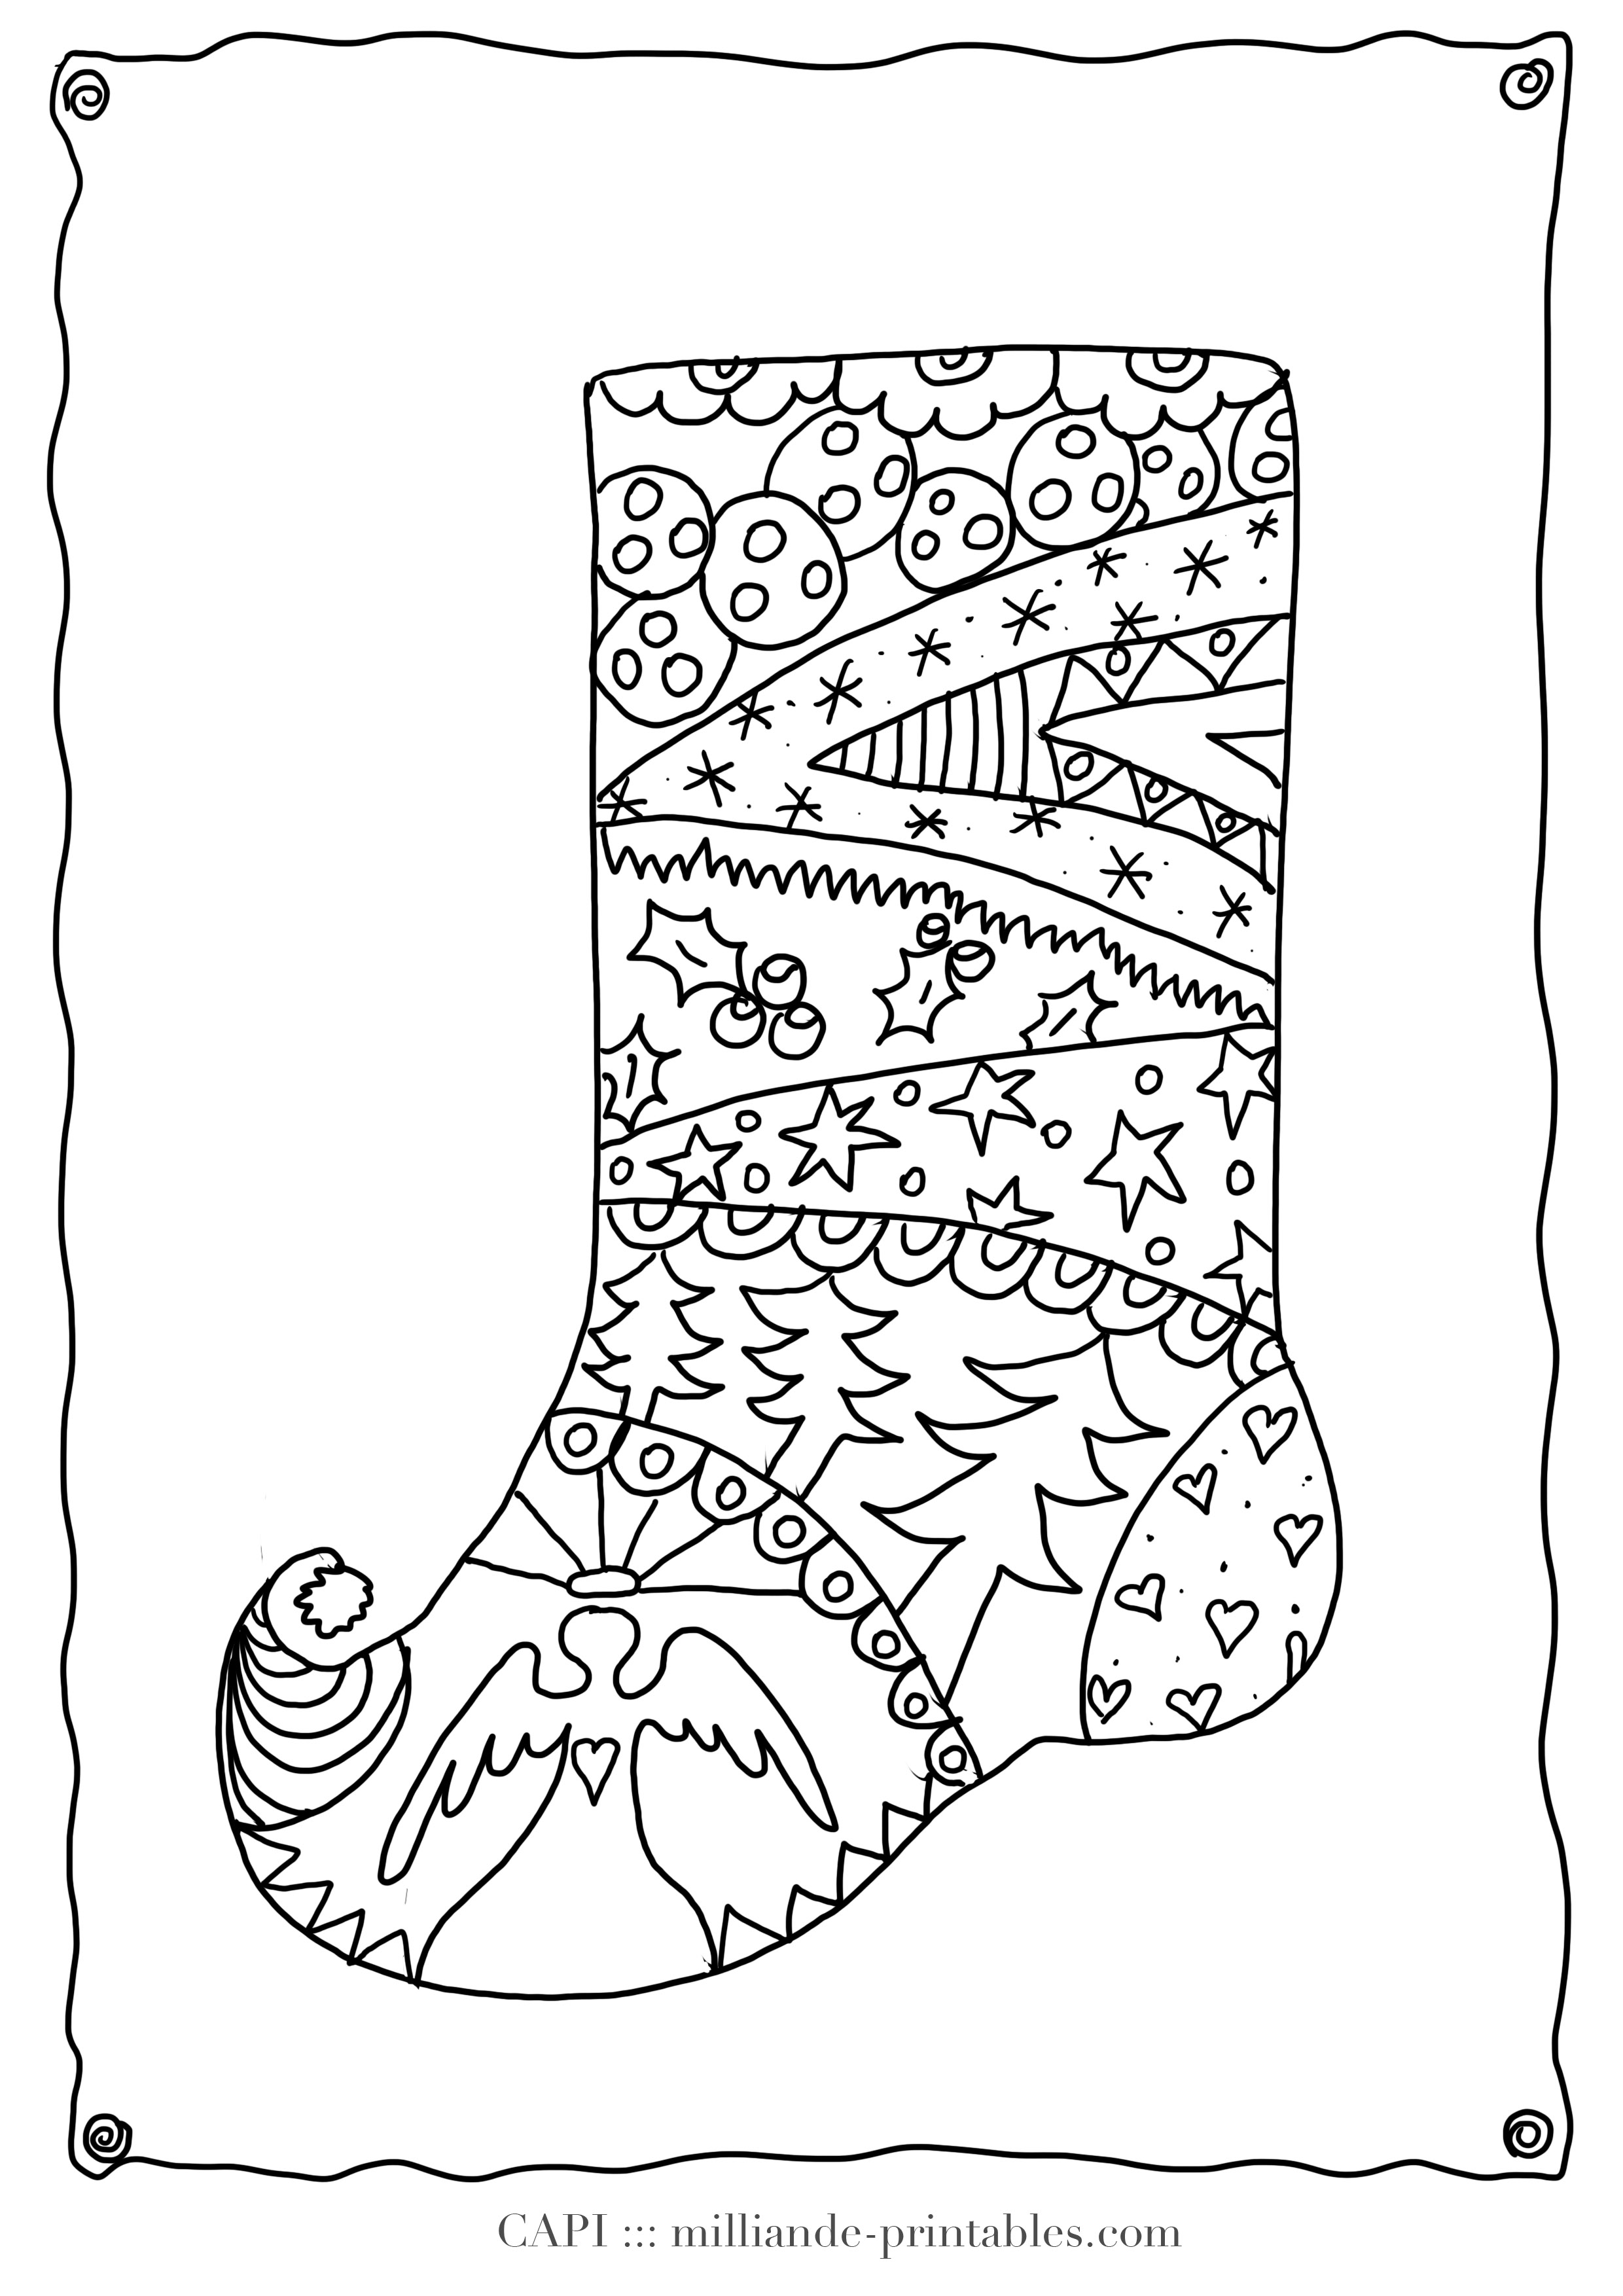 Christmas Coloring Pages That Are Hard With Difficult For Adults 2184676